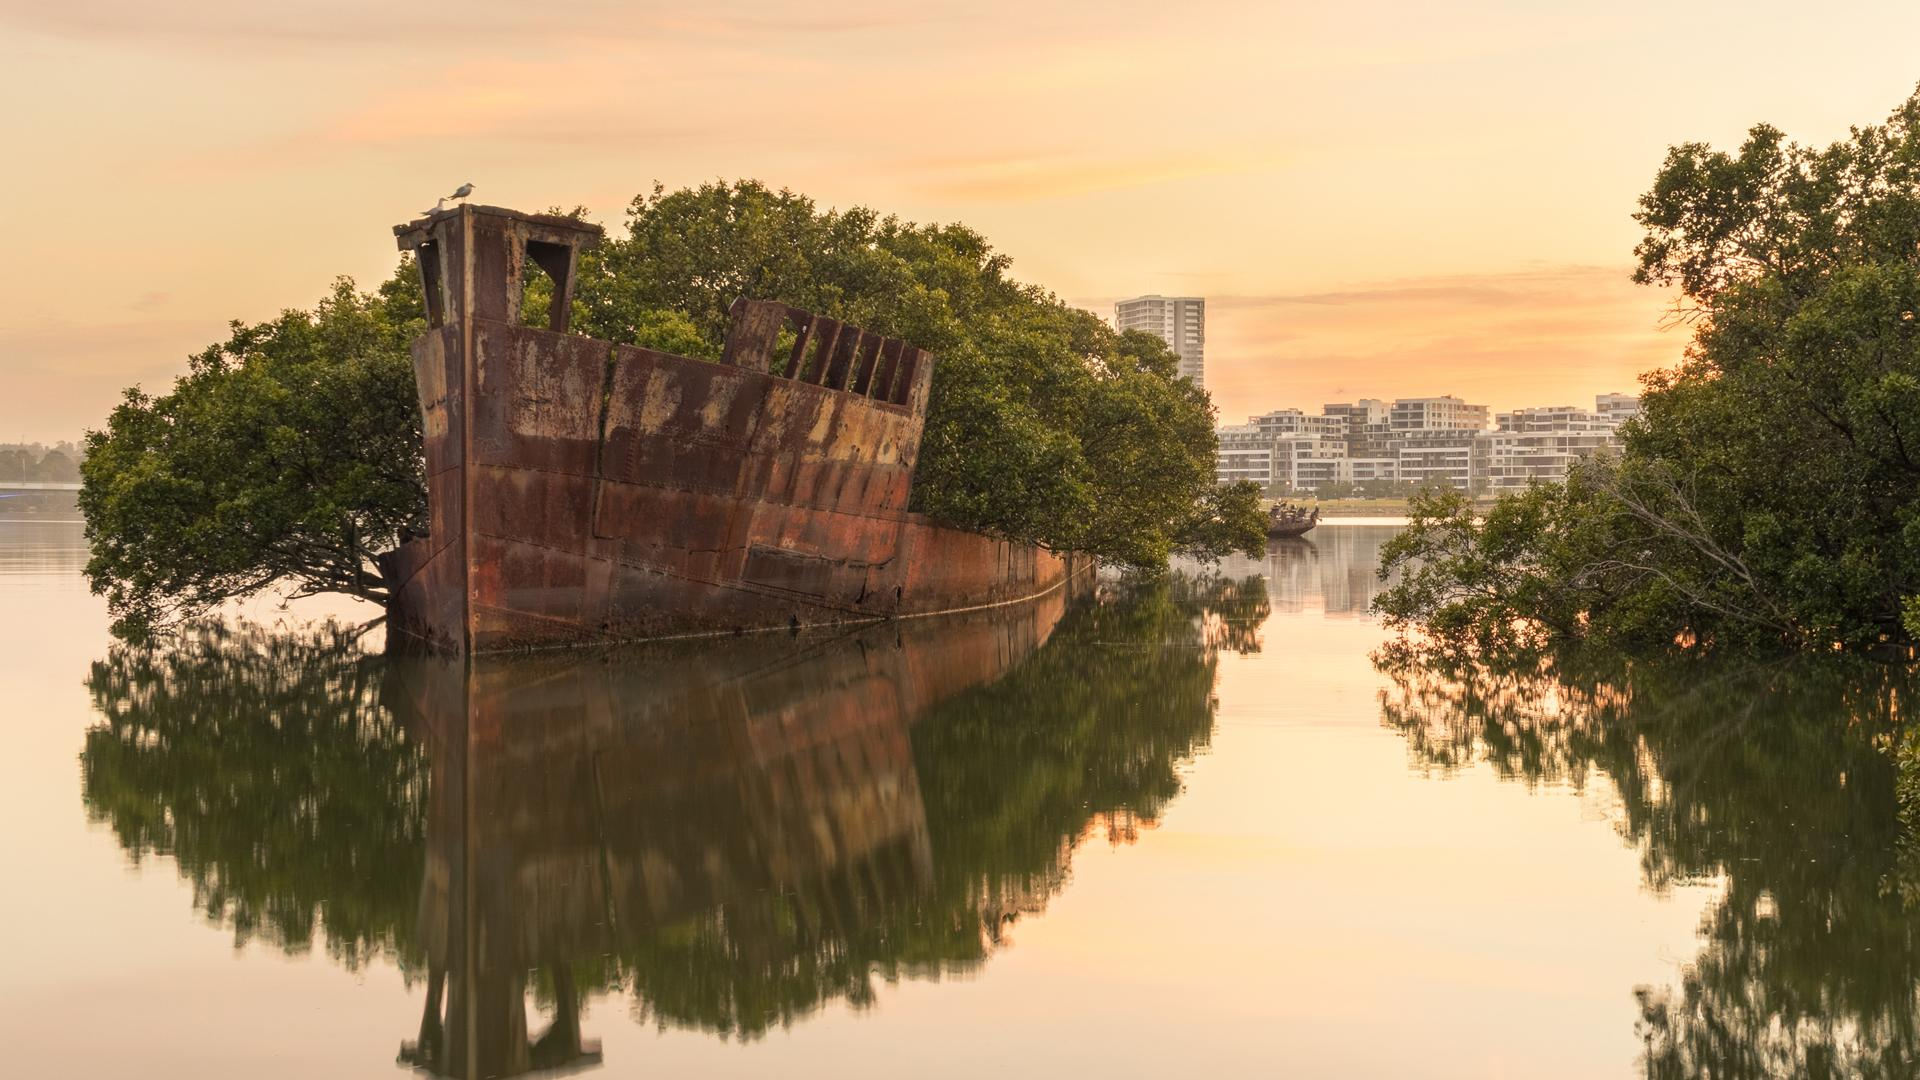 SS Ayrfield shipwreck in Homebush Bay, Australia